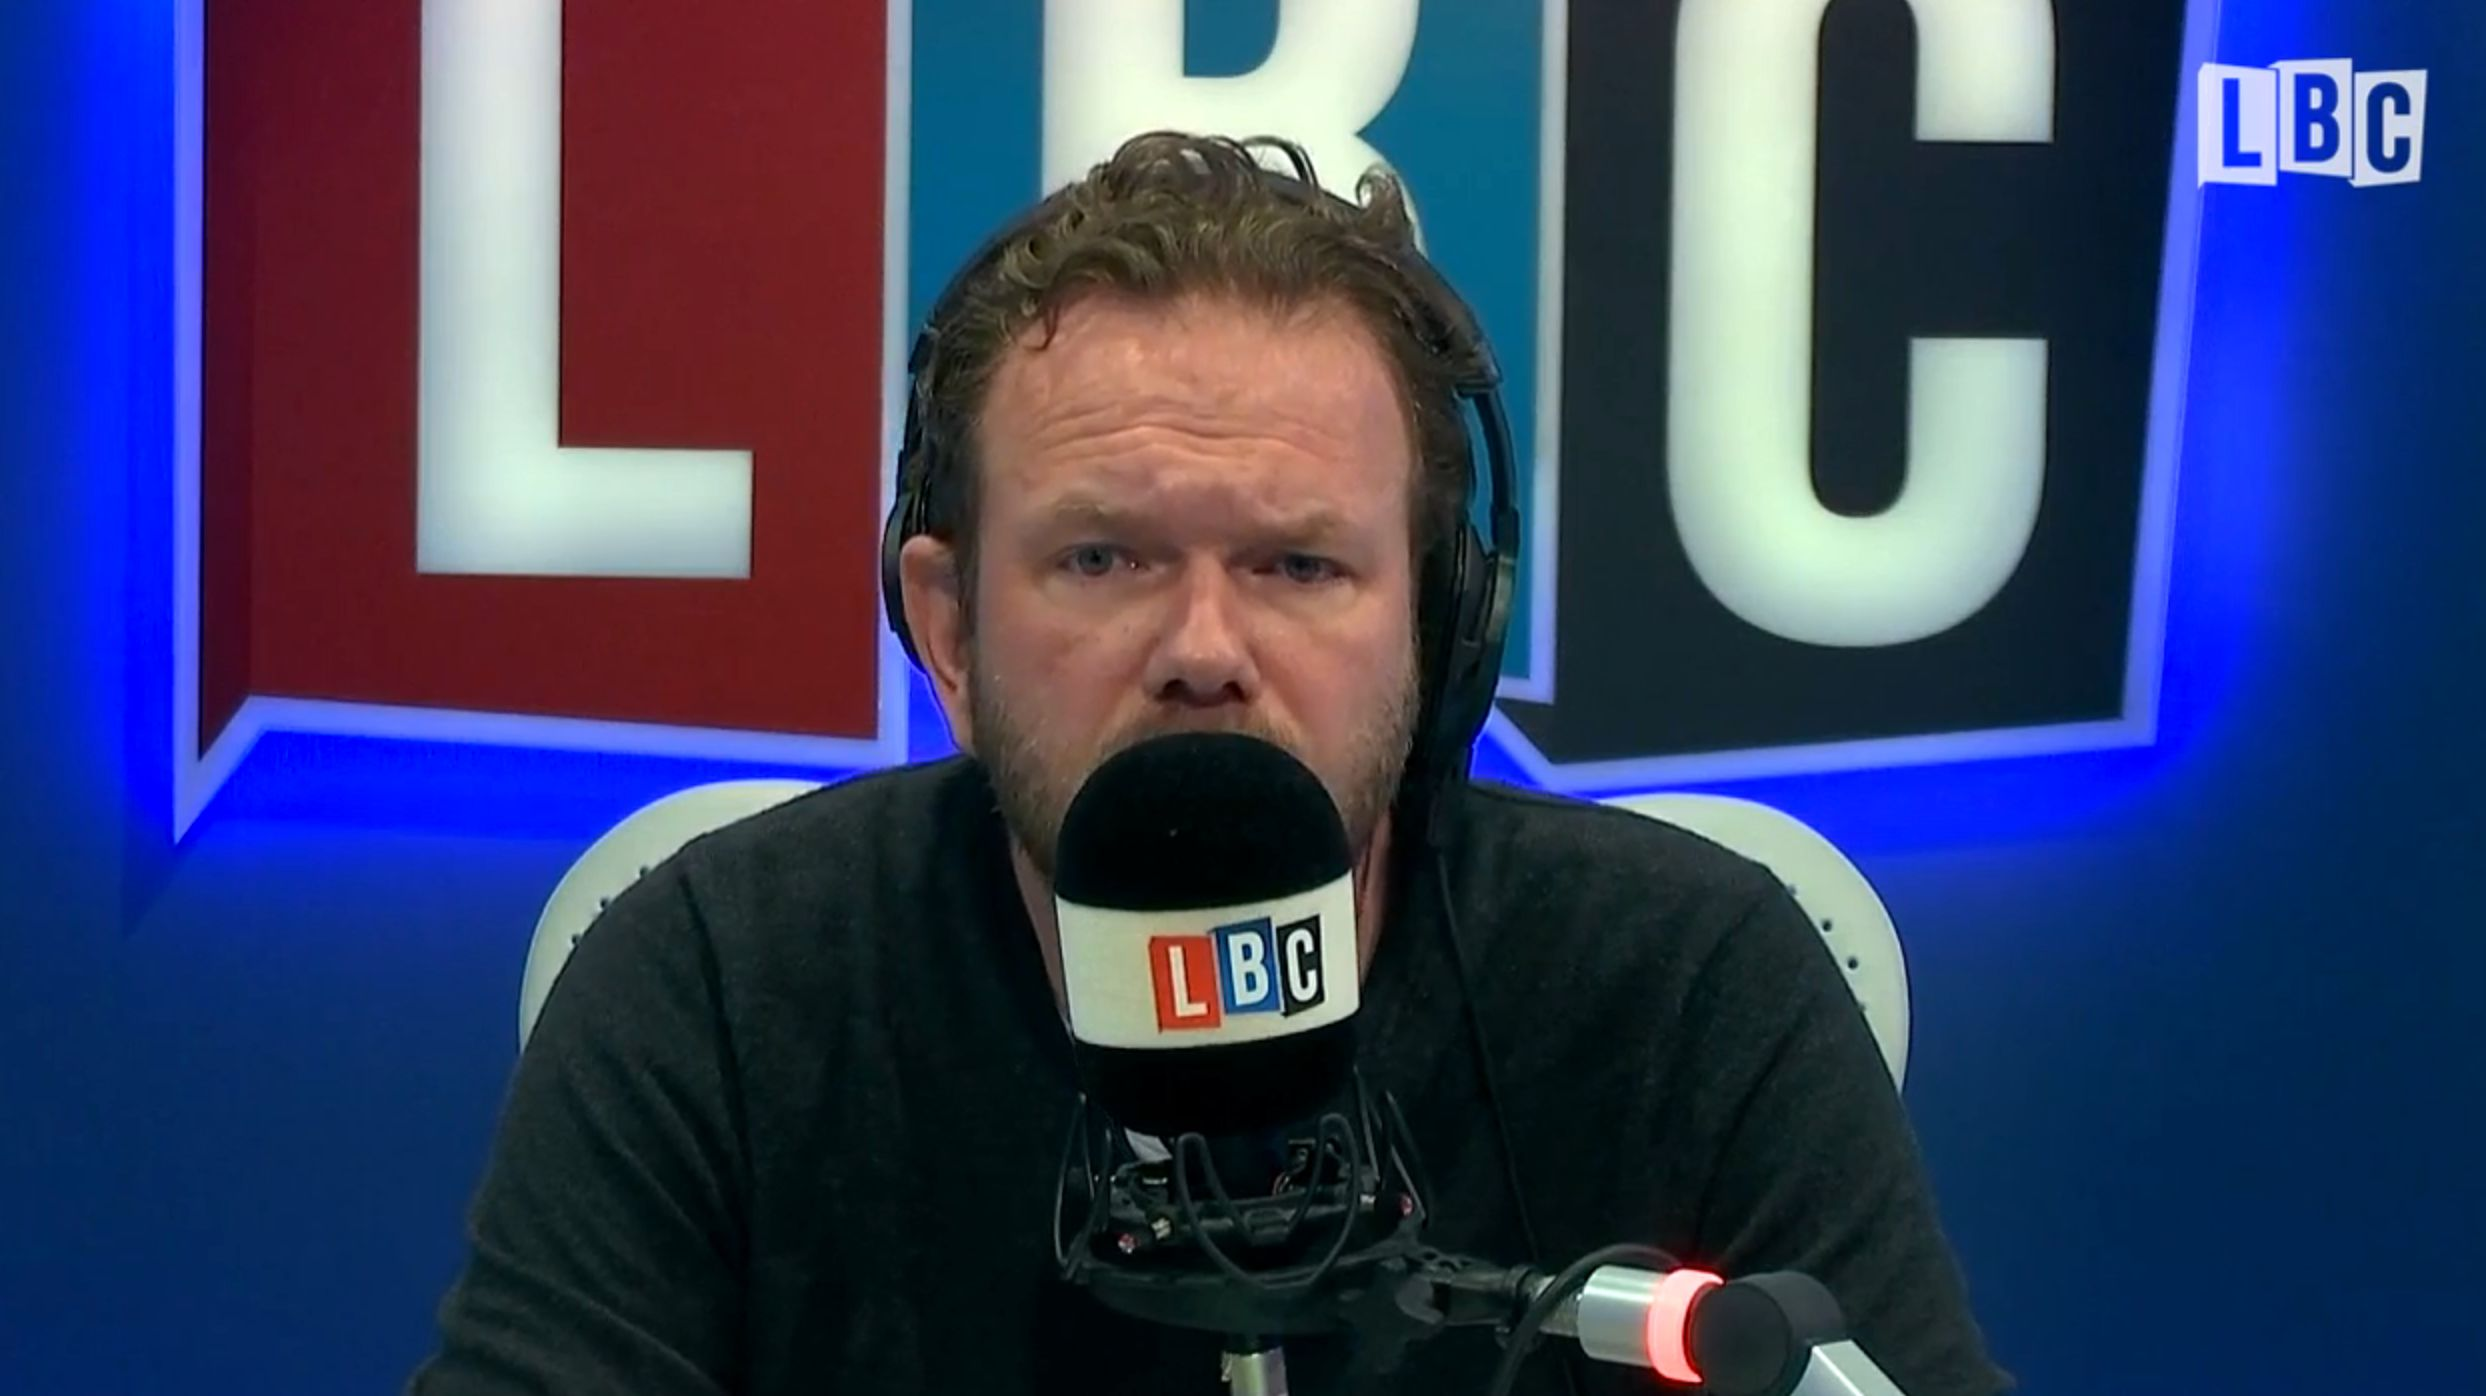 Distressed German Caller Tells LBC She's Too 'Frightened' To Leave Her Home After